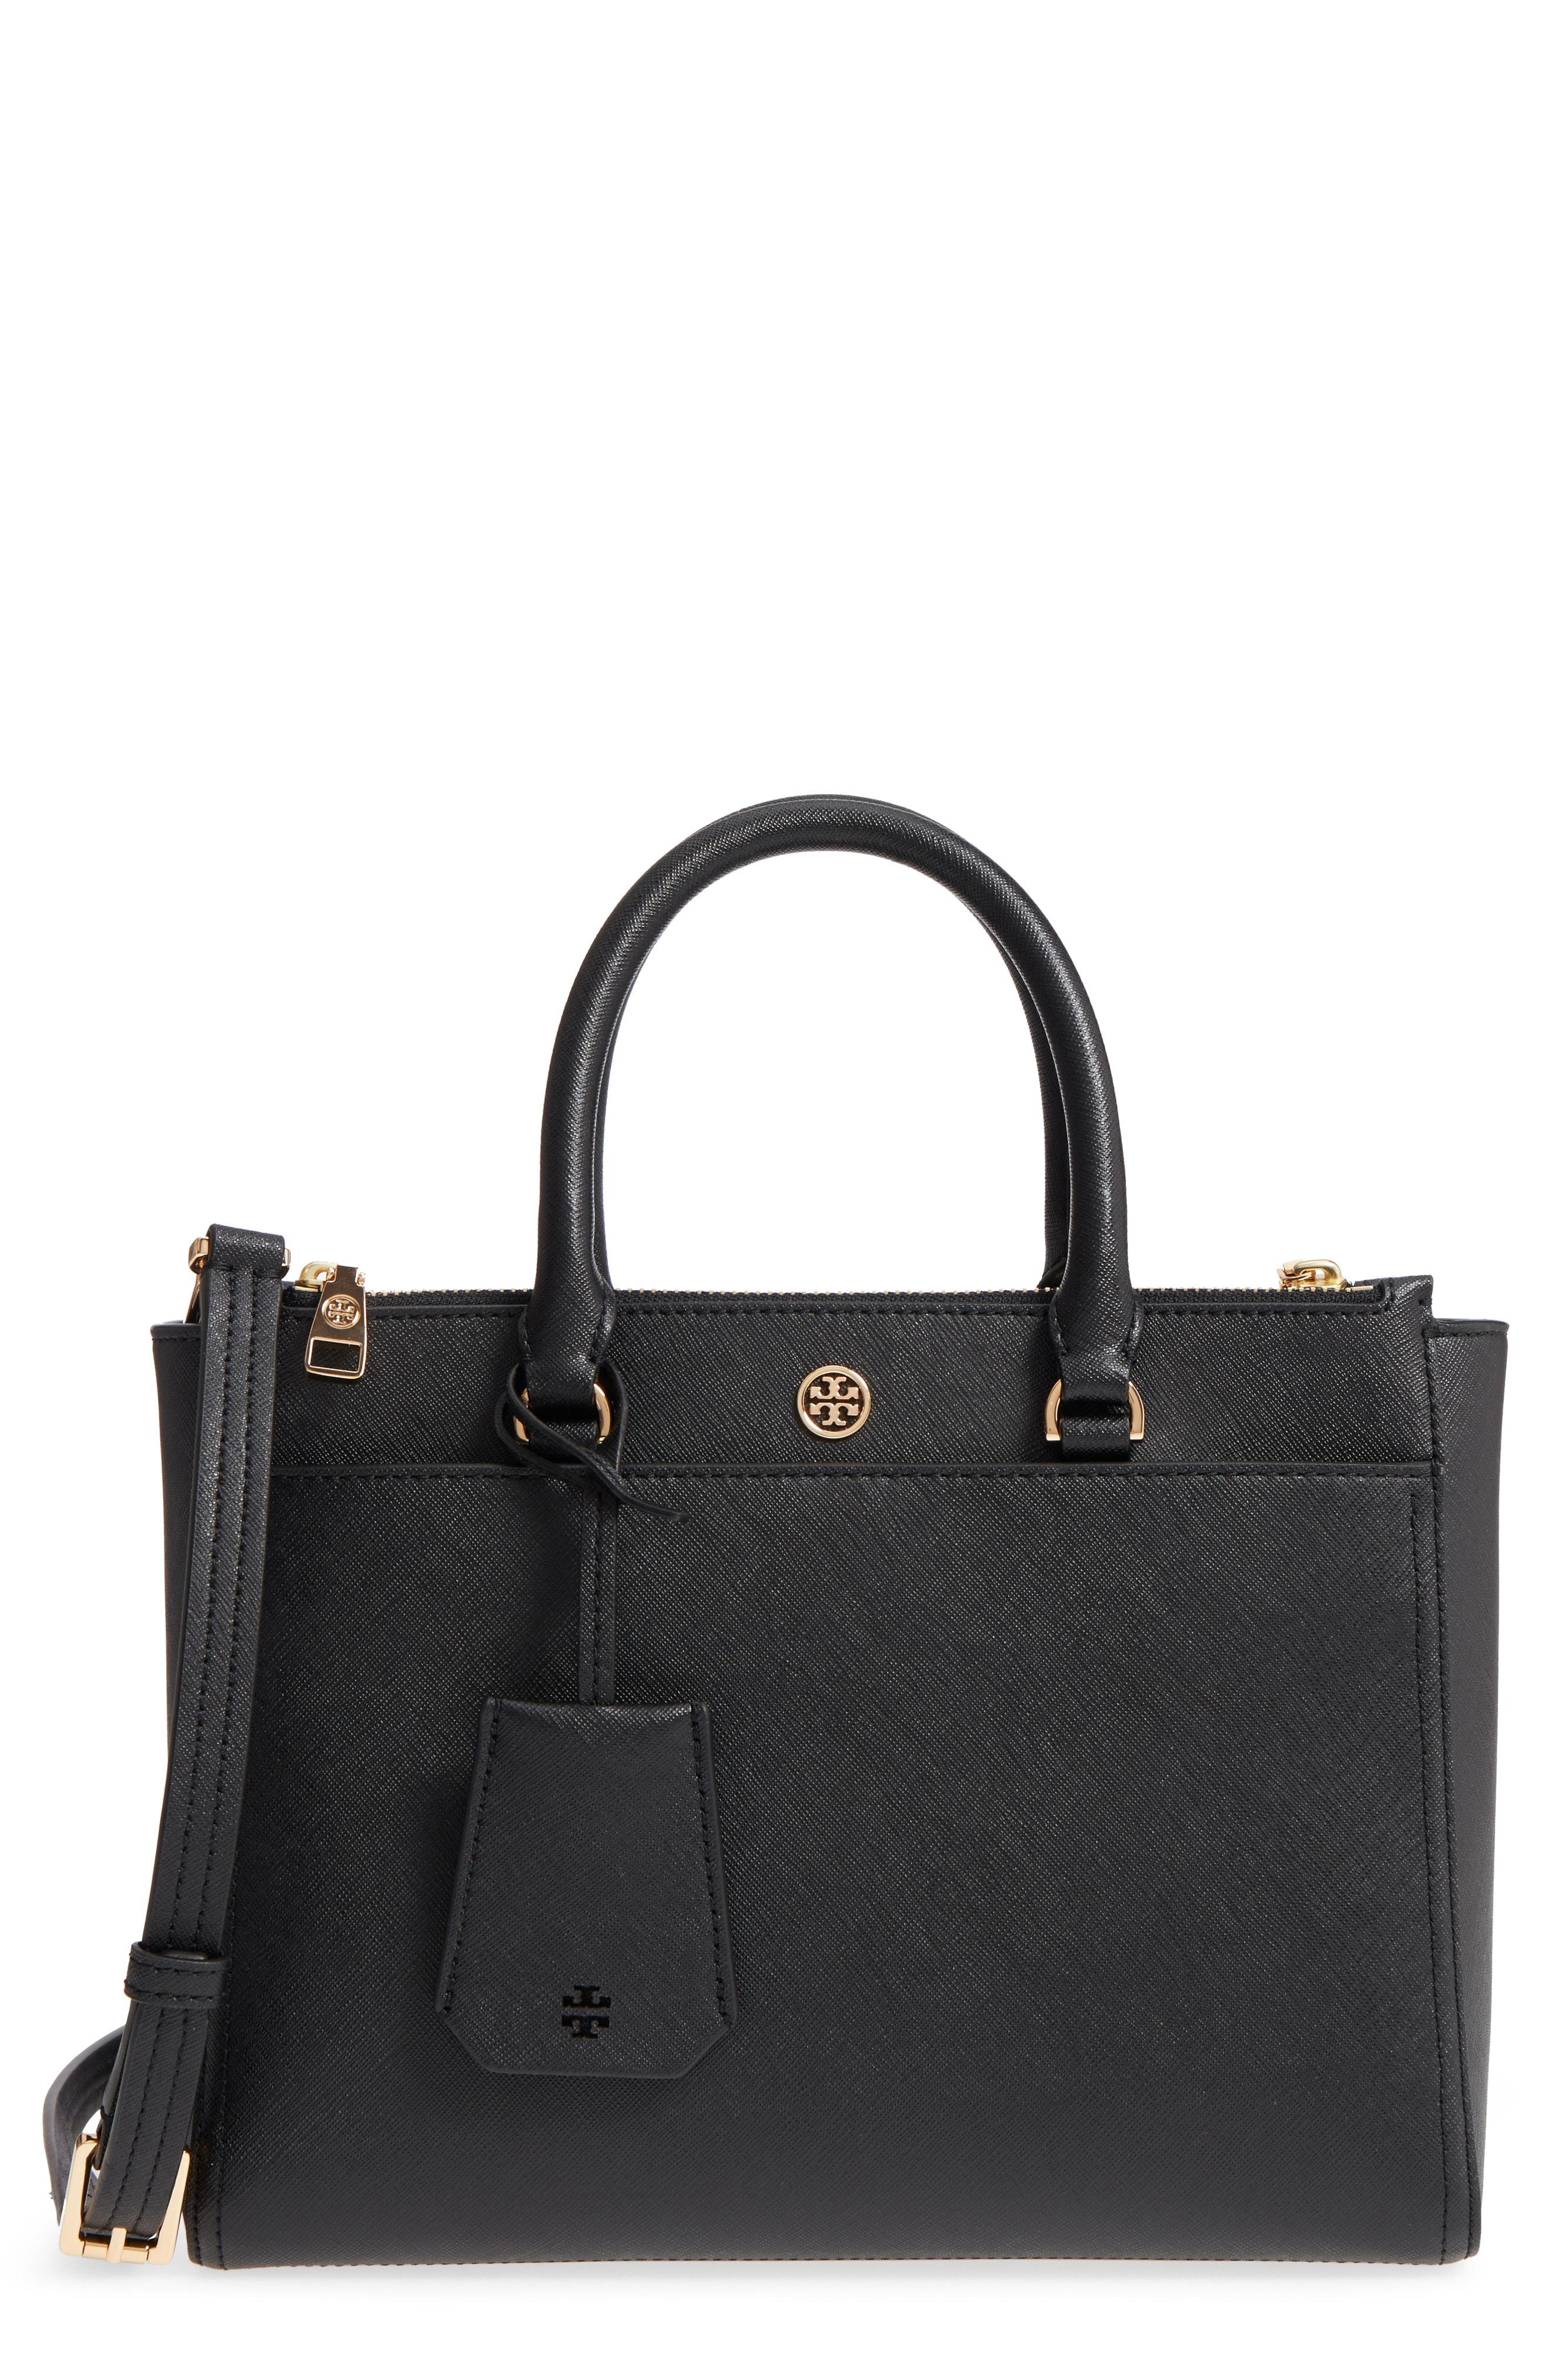 97cbc063b46f Lyst - Tory Burch Small Robinson Leather Tote in Brown